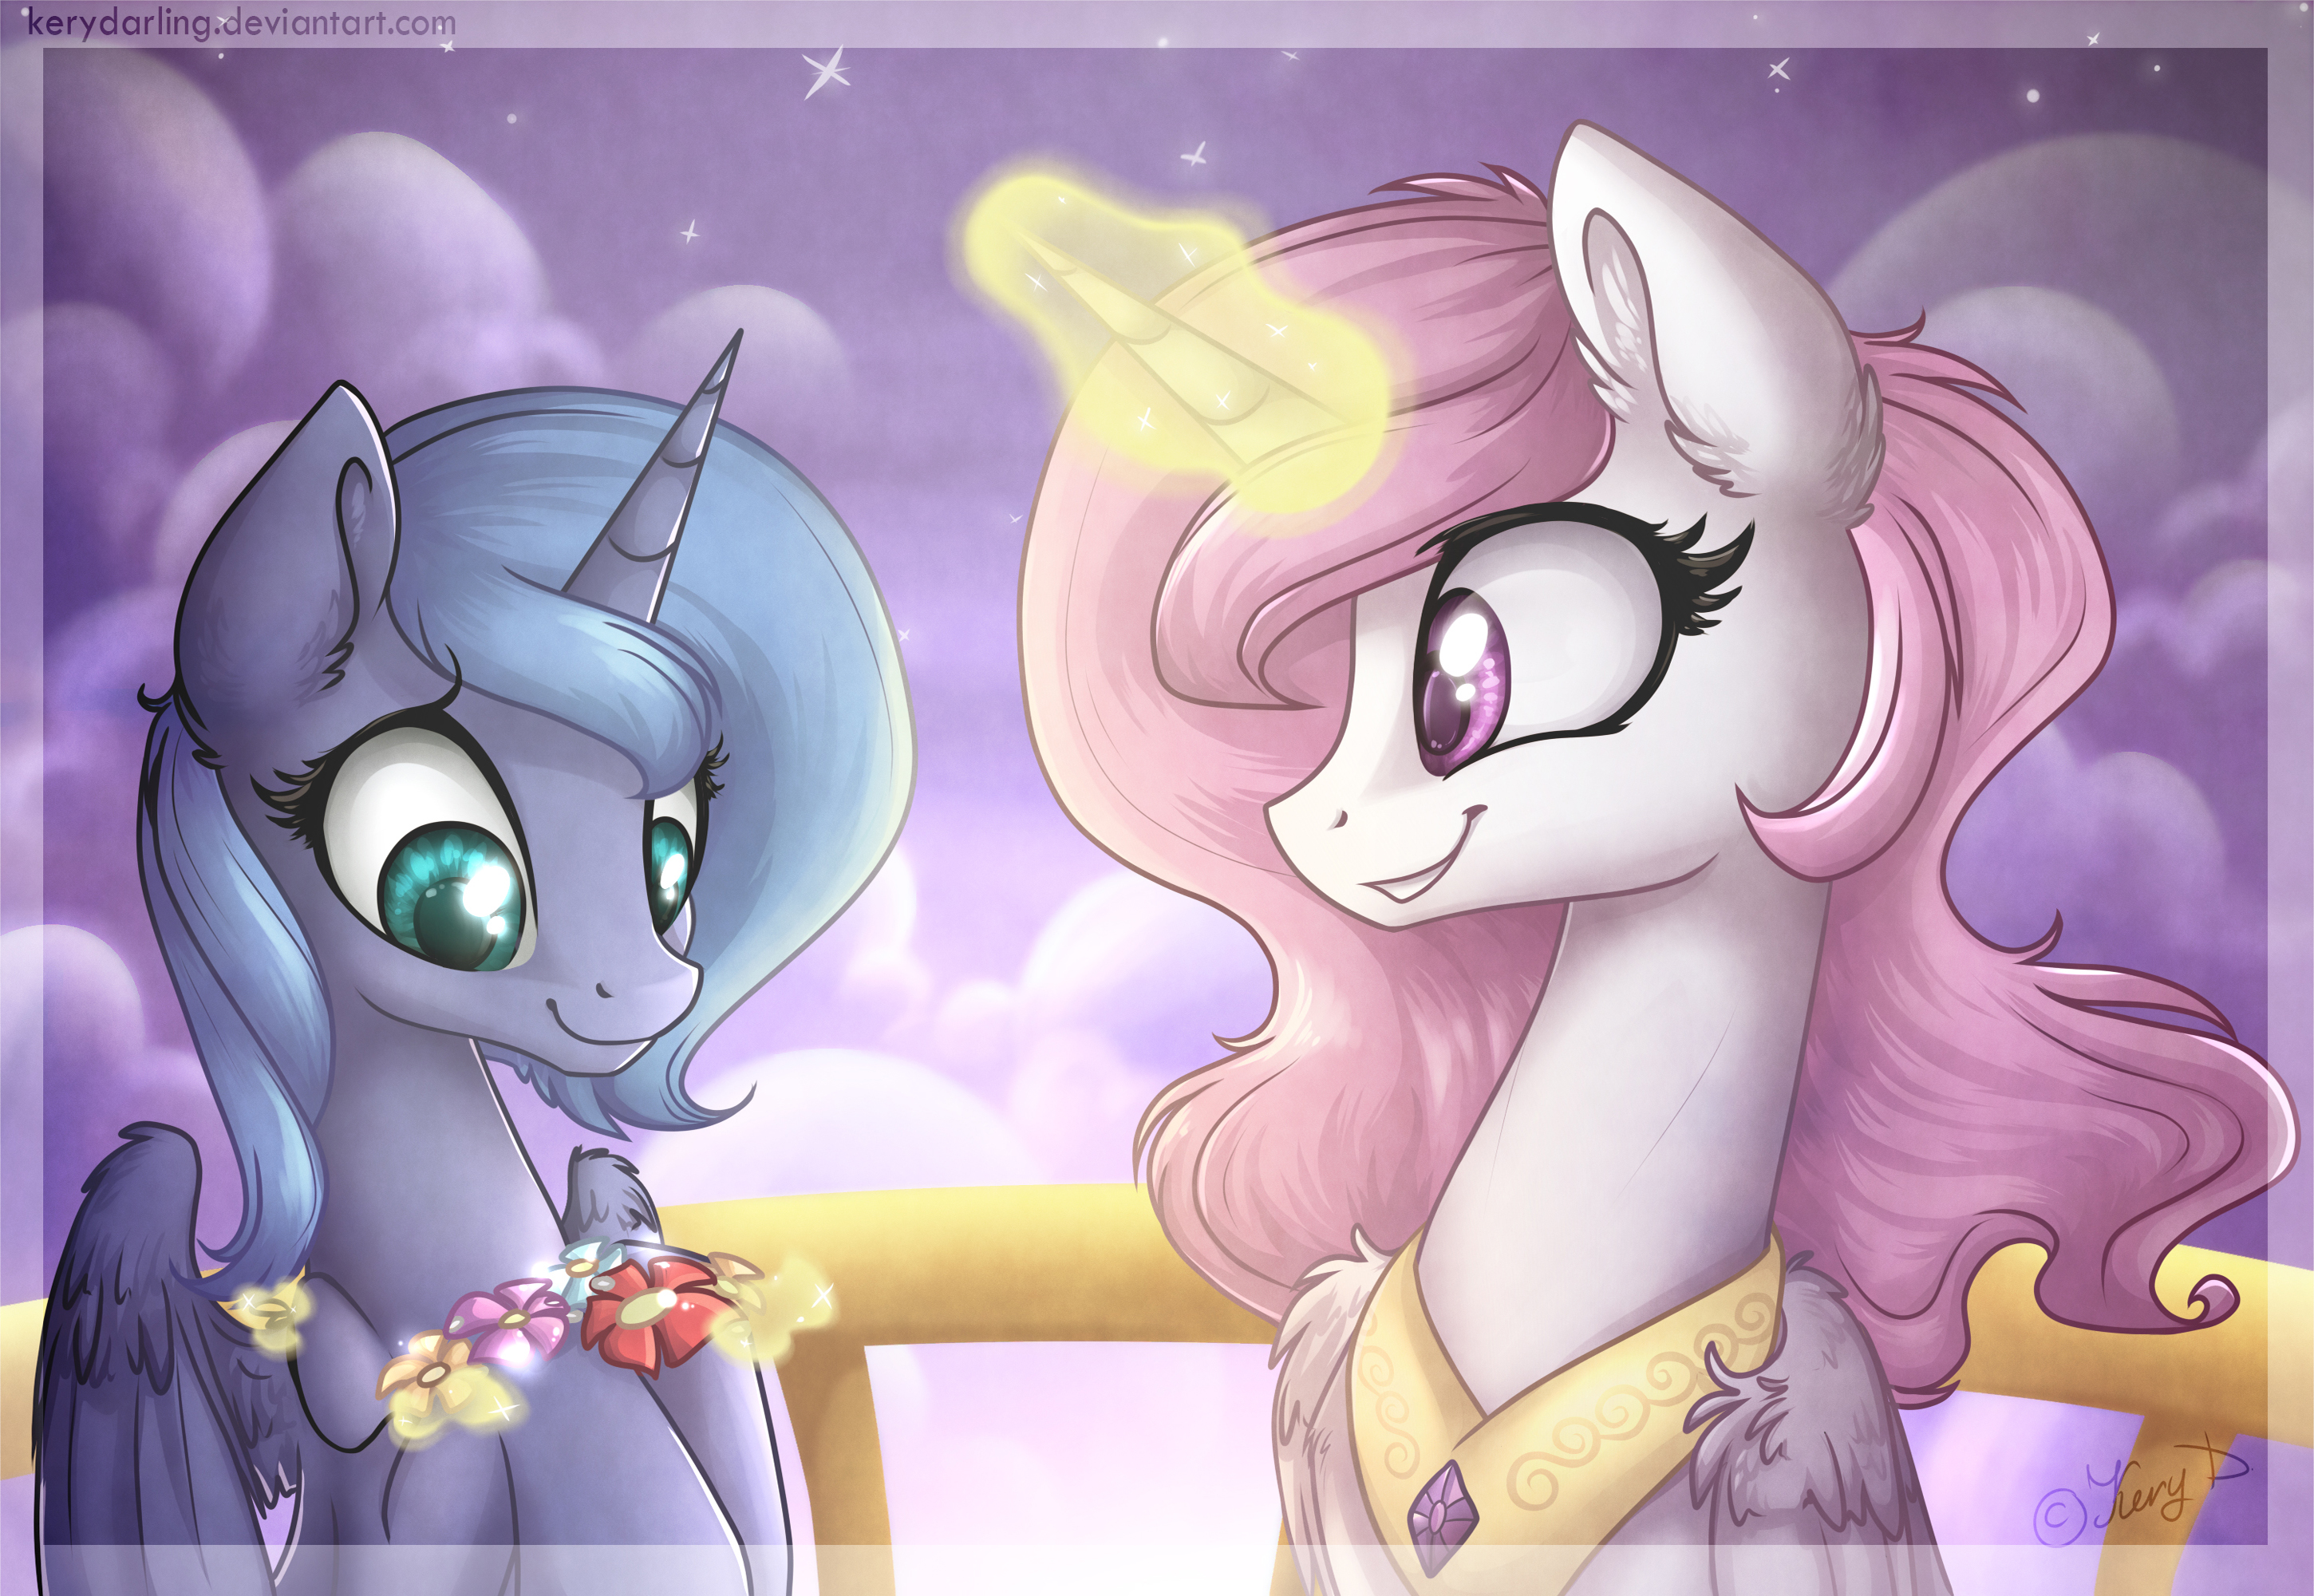 it_s_for_you___little_sis_by_kerydarling